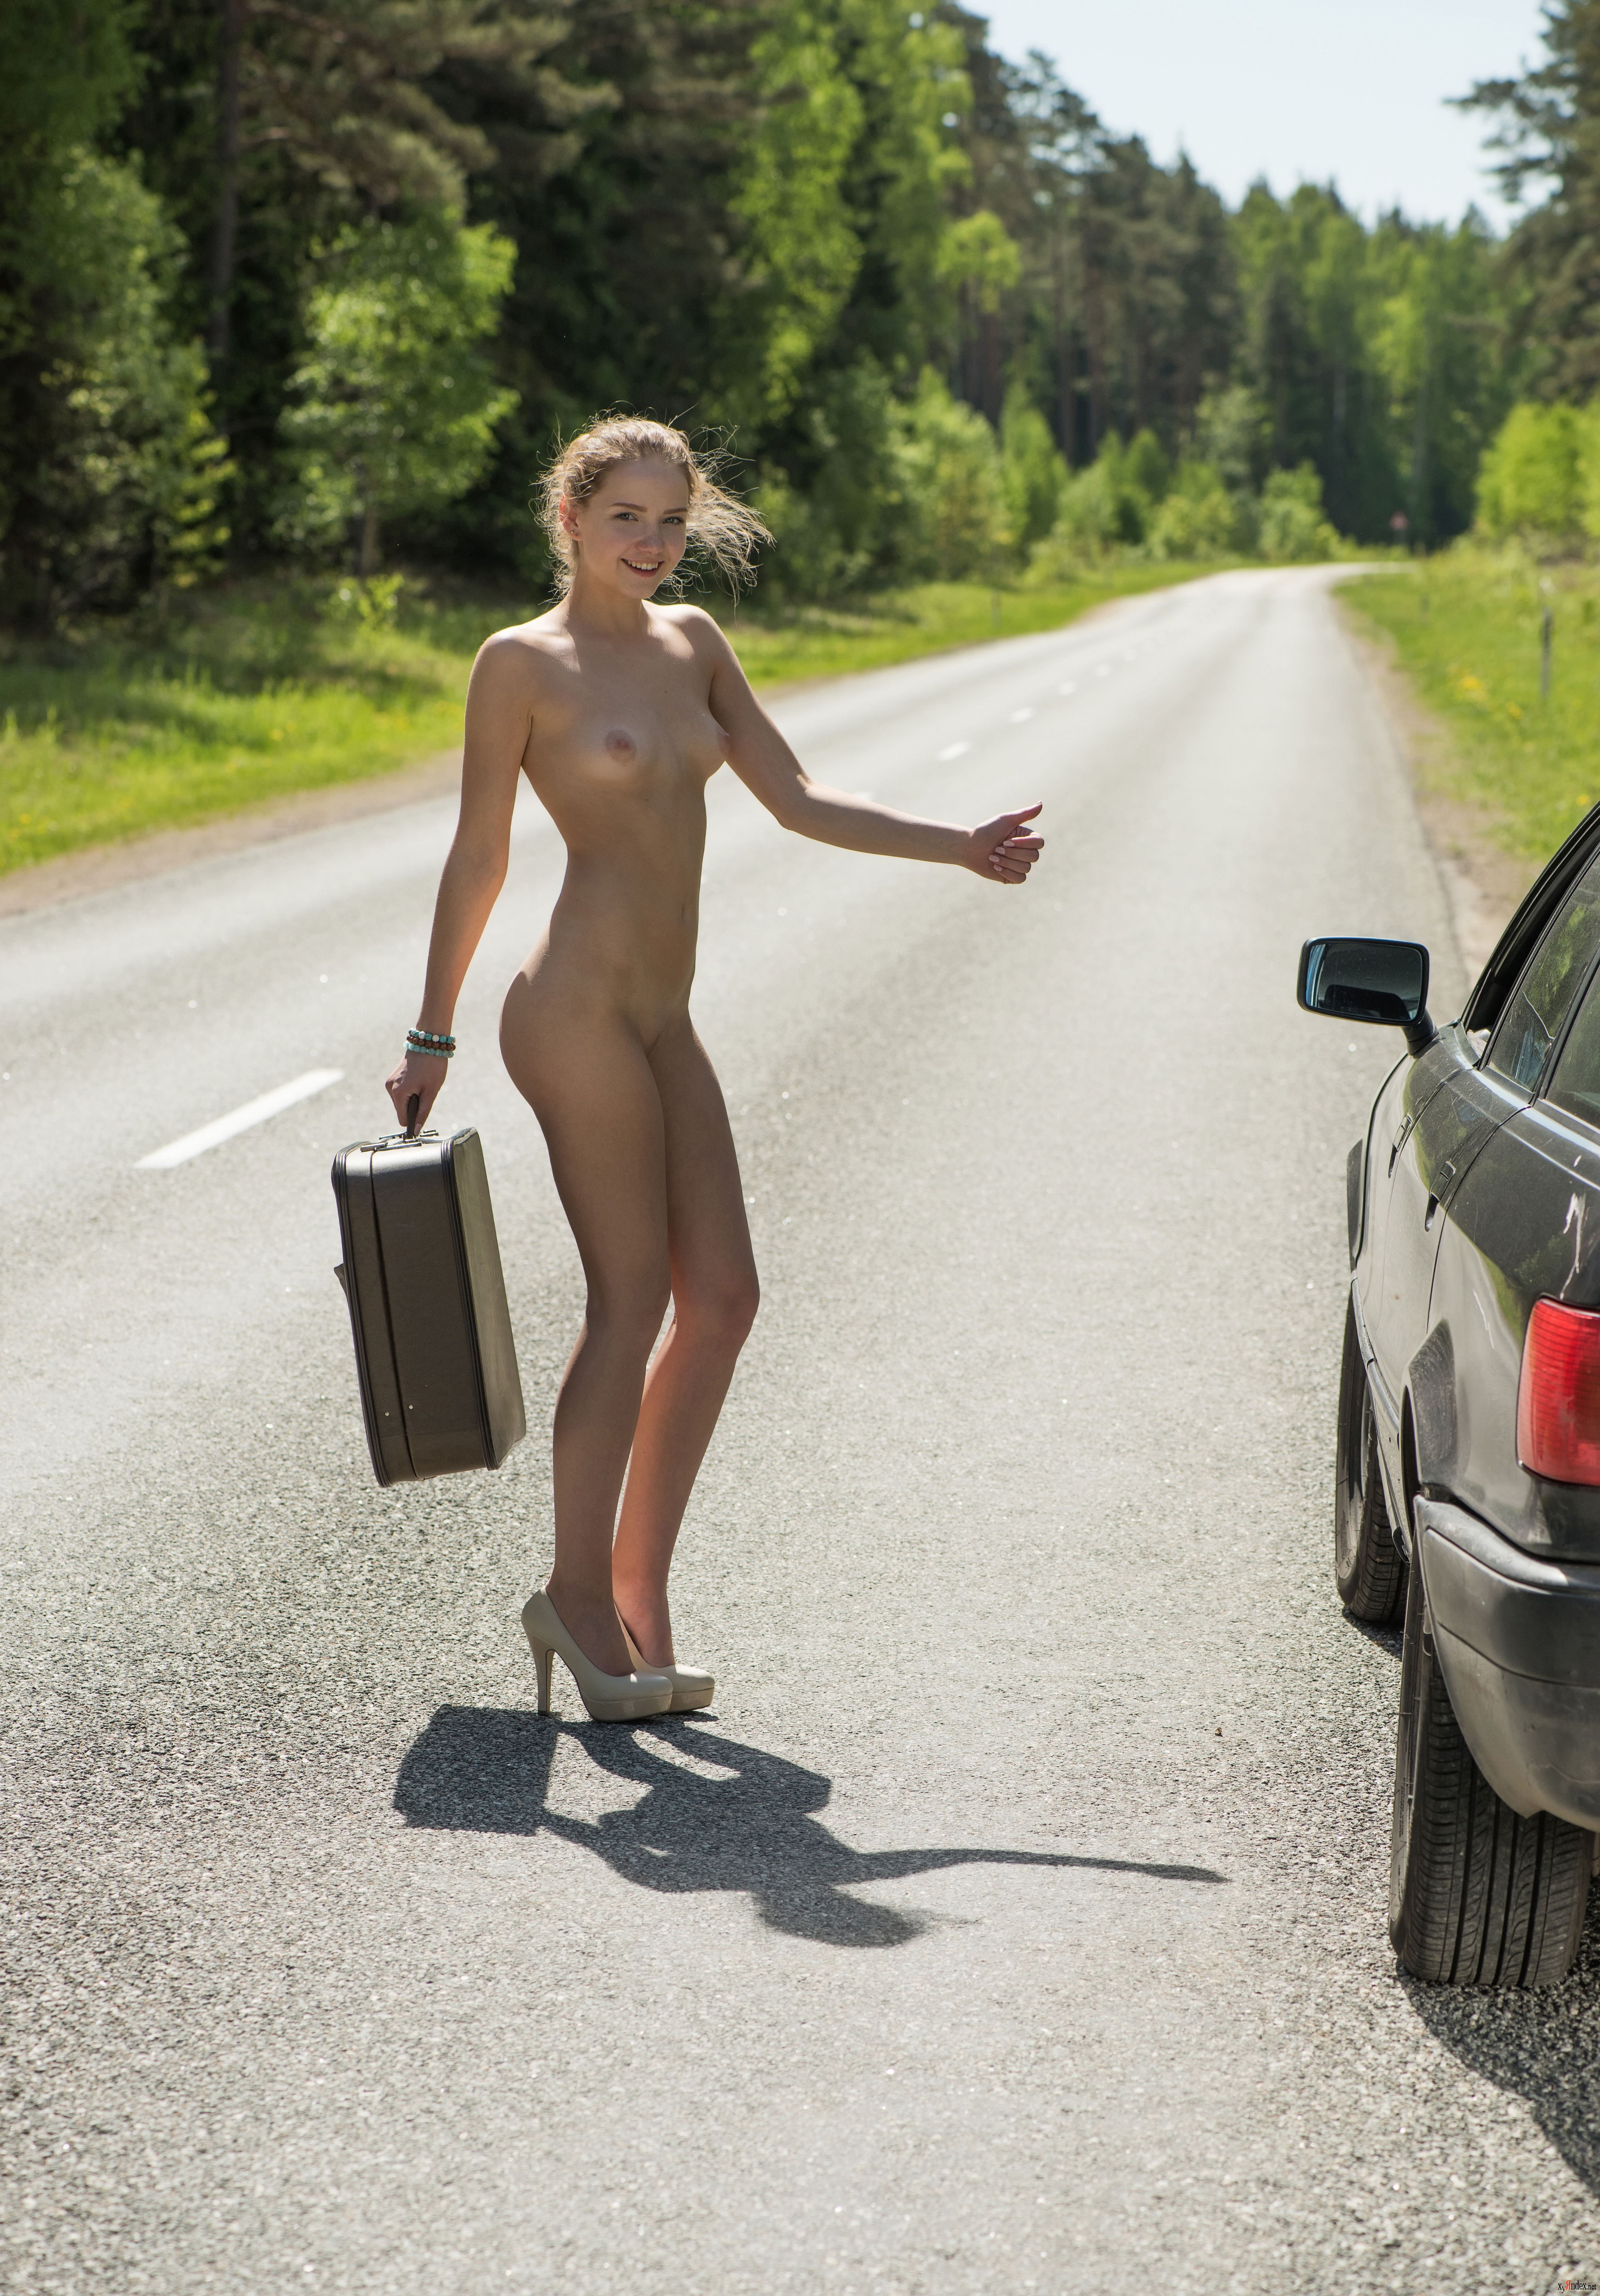 Hitchhiker stock photo footage